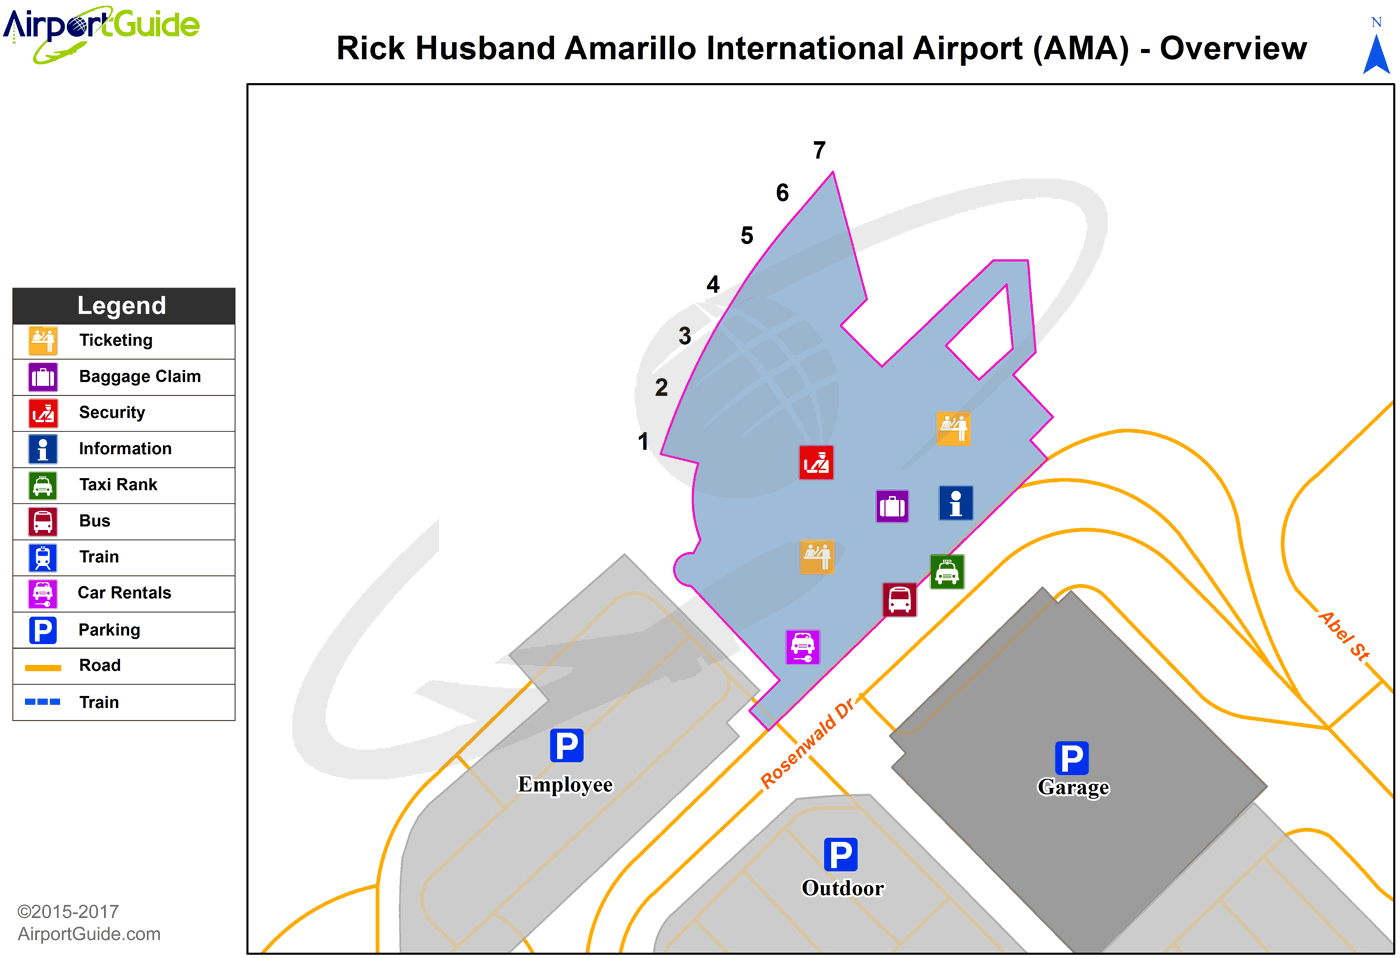 Amarillo - Rick Husband Amarillo International (AMA) Airport Terminal Map - Overview